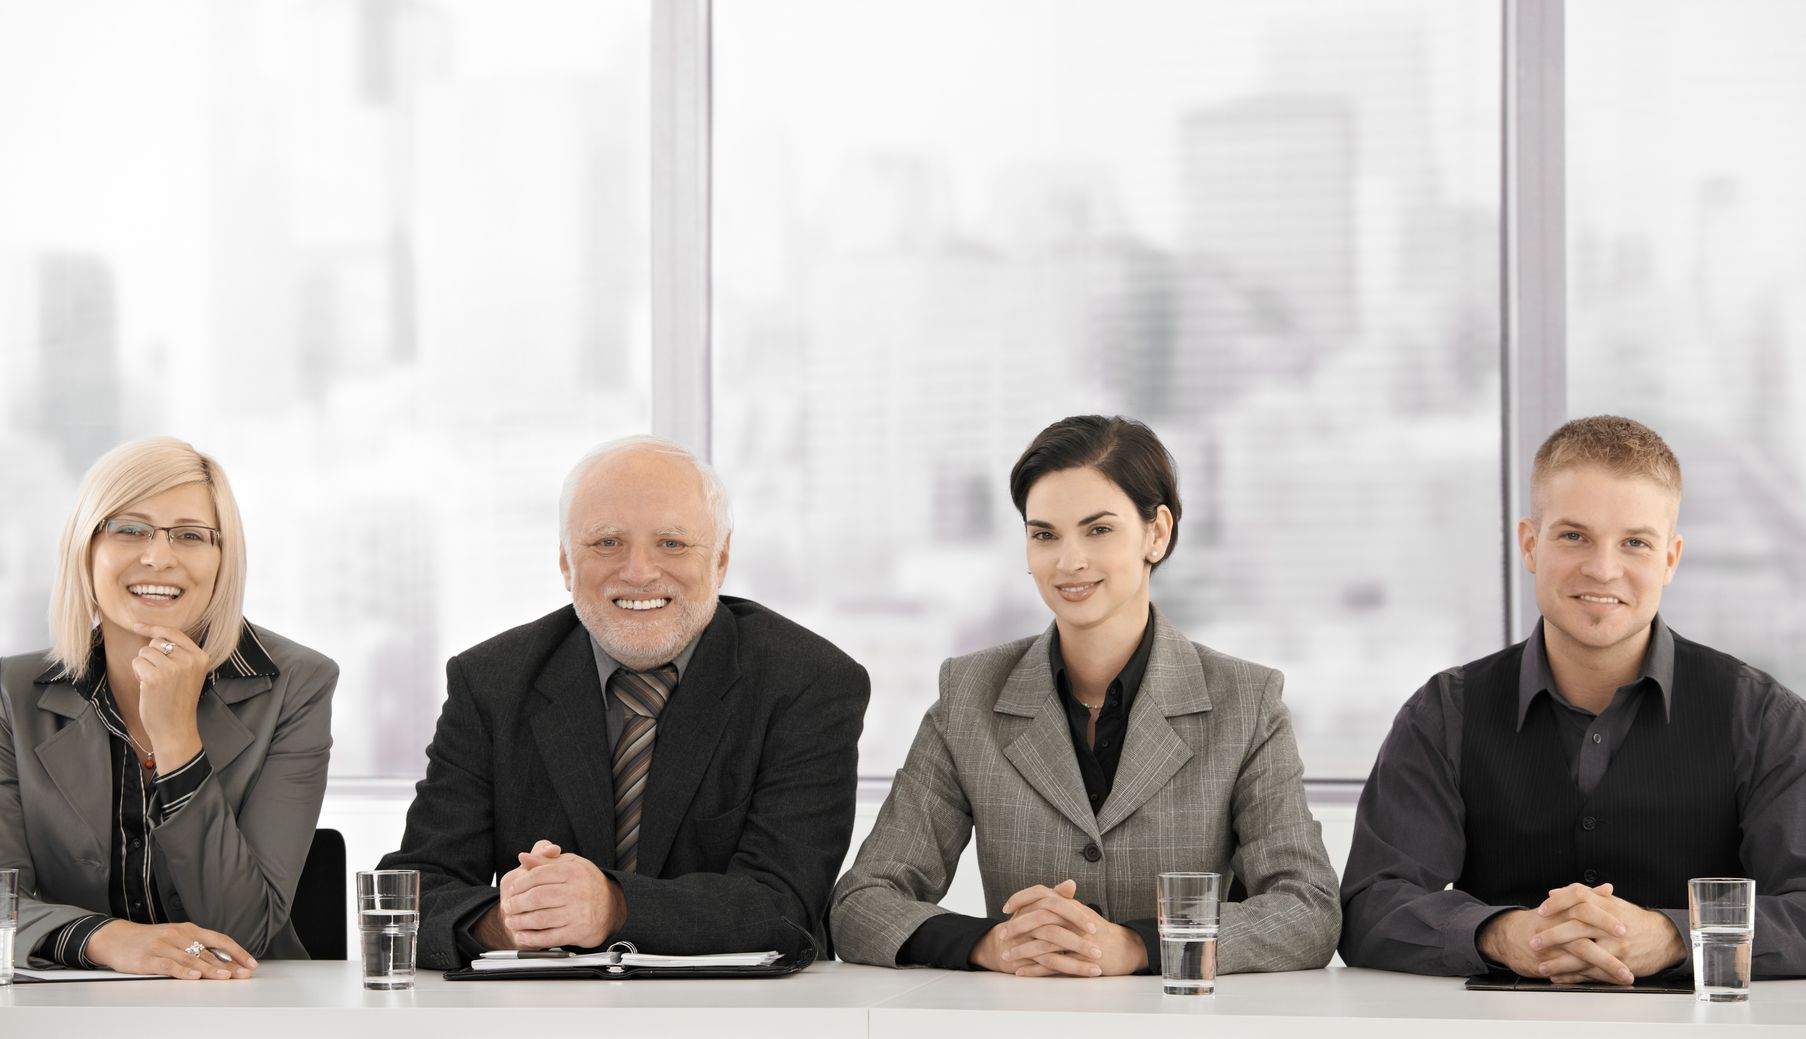 How to Manage Graduates, Guide for Baby Boomer Bosses ...